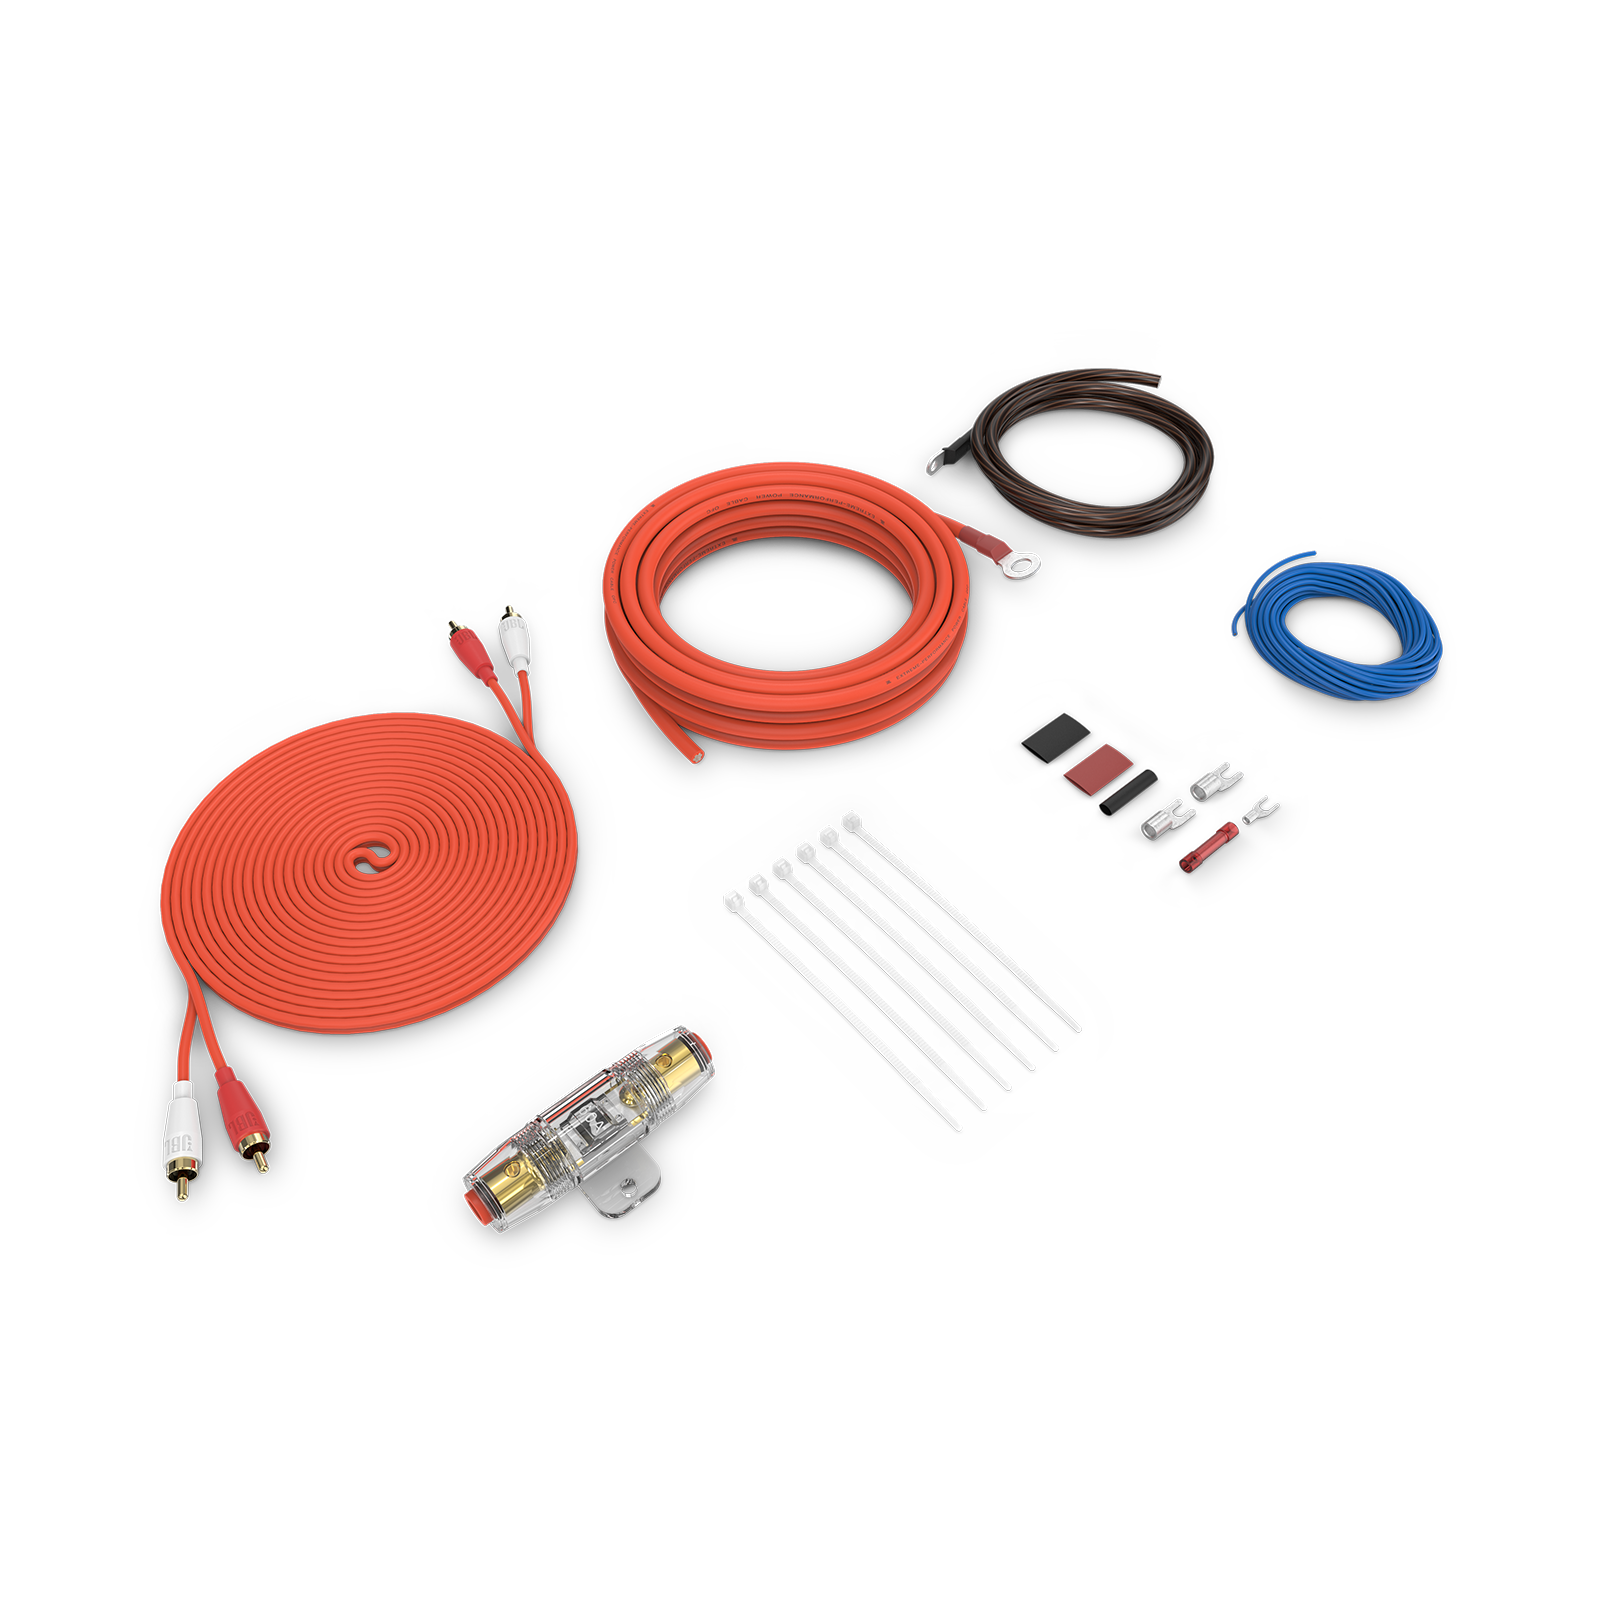 Stage Wiring Kit AK-82CA | Amplifier wiring kit for amps up to 550 watts